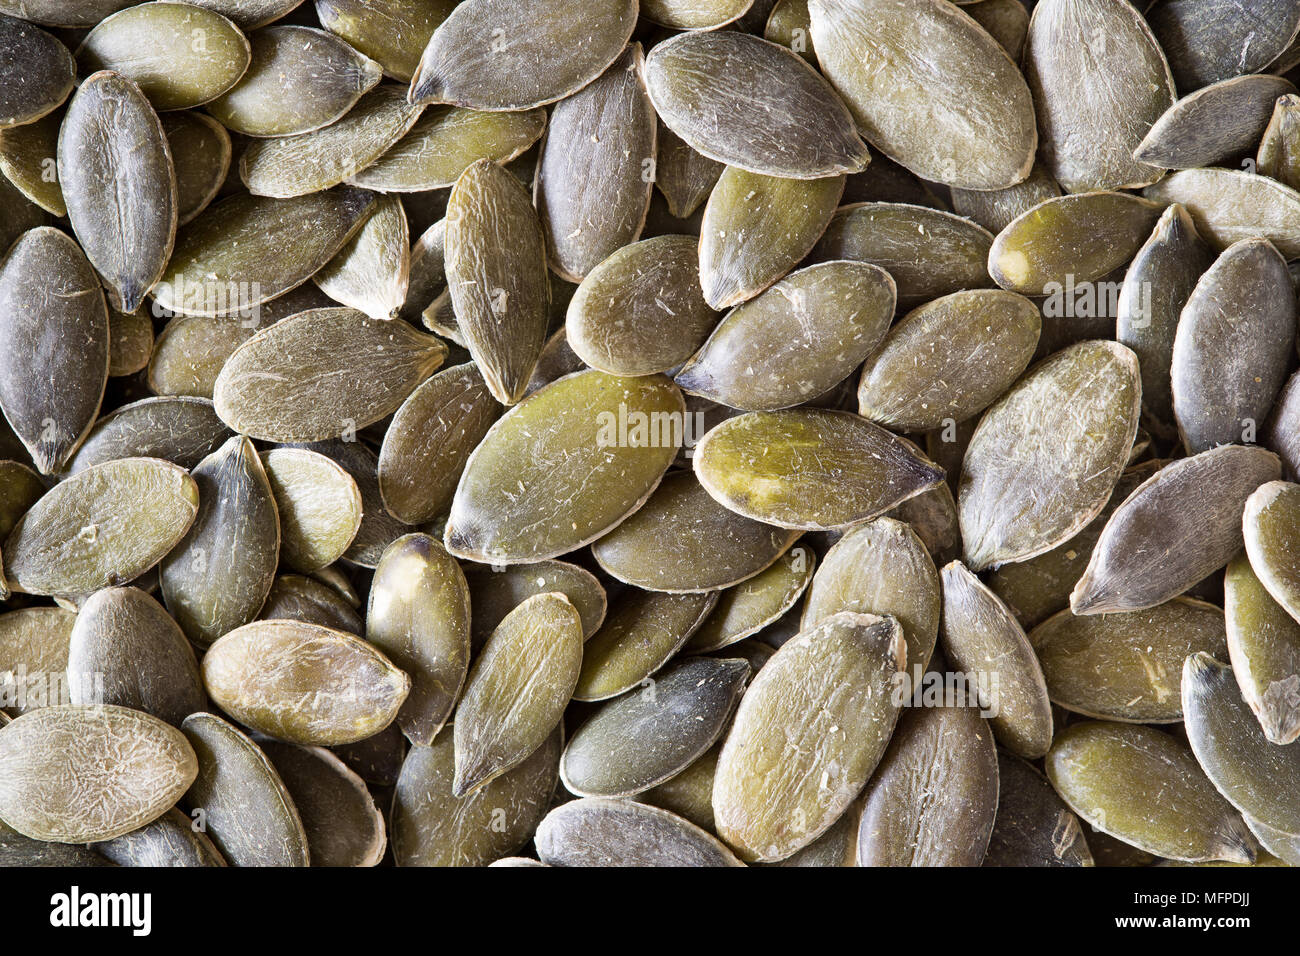 Close up of raw, organic, highly nutritious pumpkin seeds ...